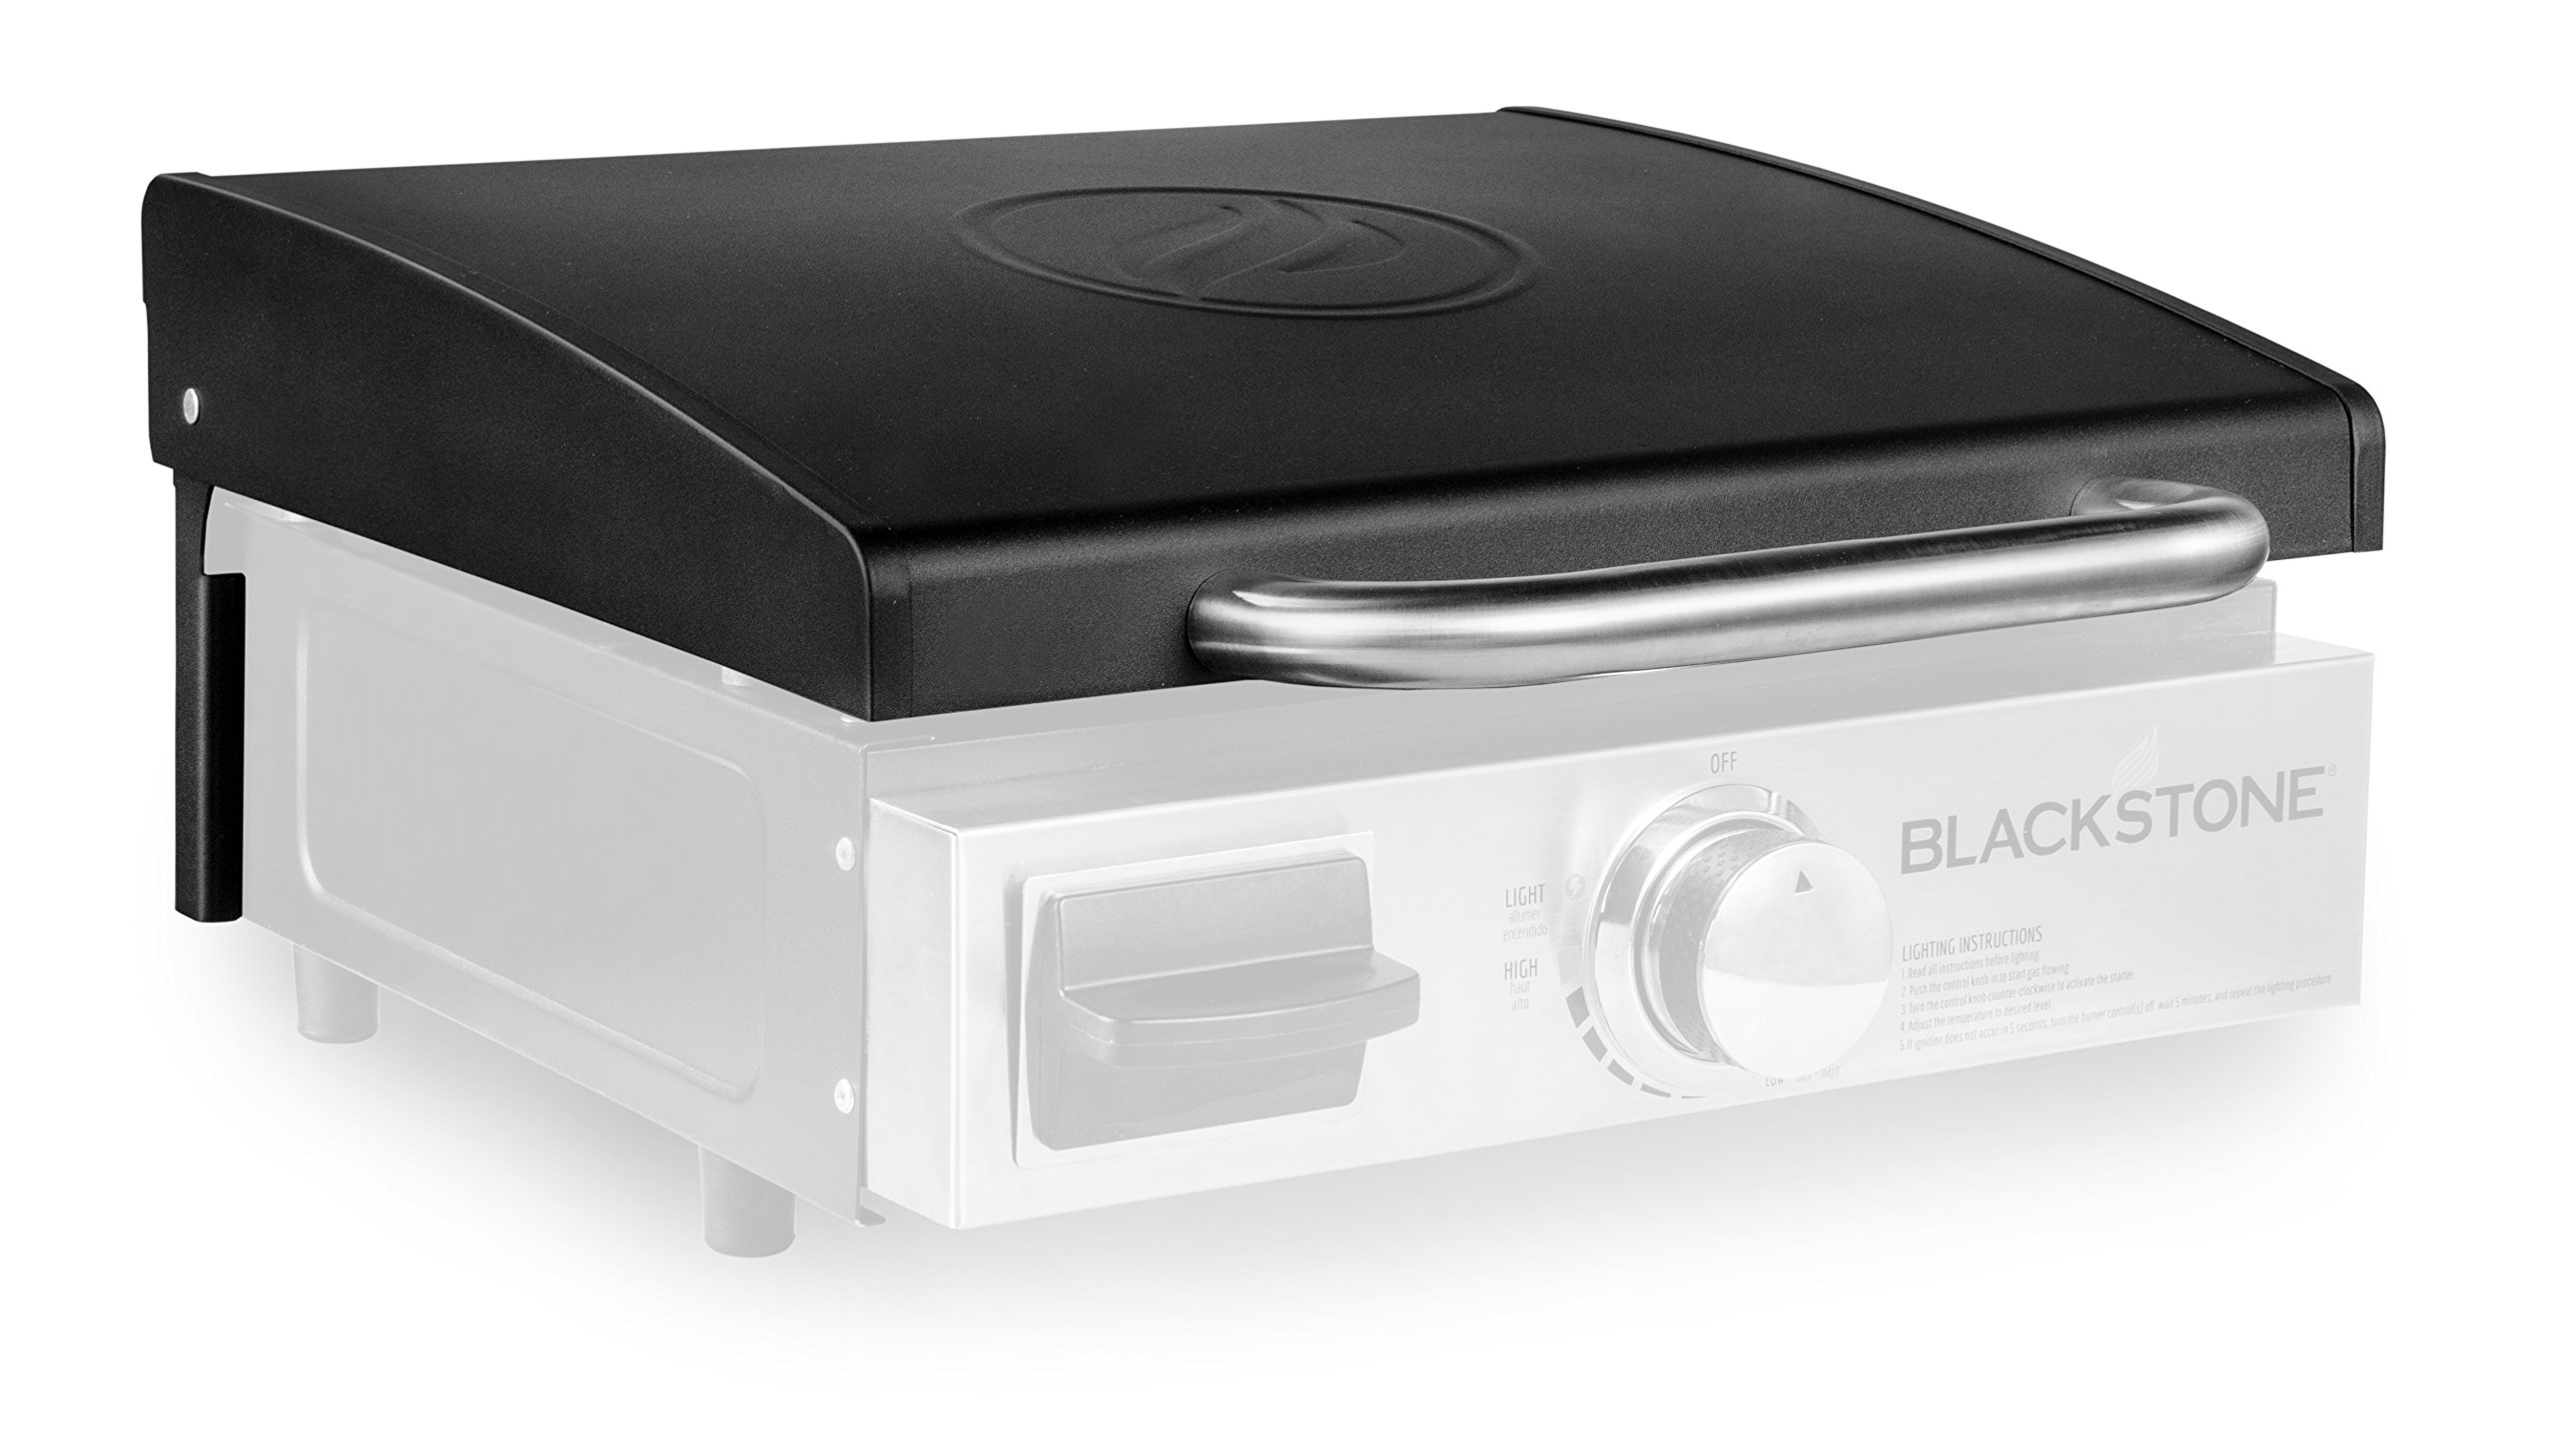 Blackstone 5010 Signature Accessories-17 Griddle Hood, Black, Front Grease Only models by Blackstone